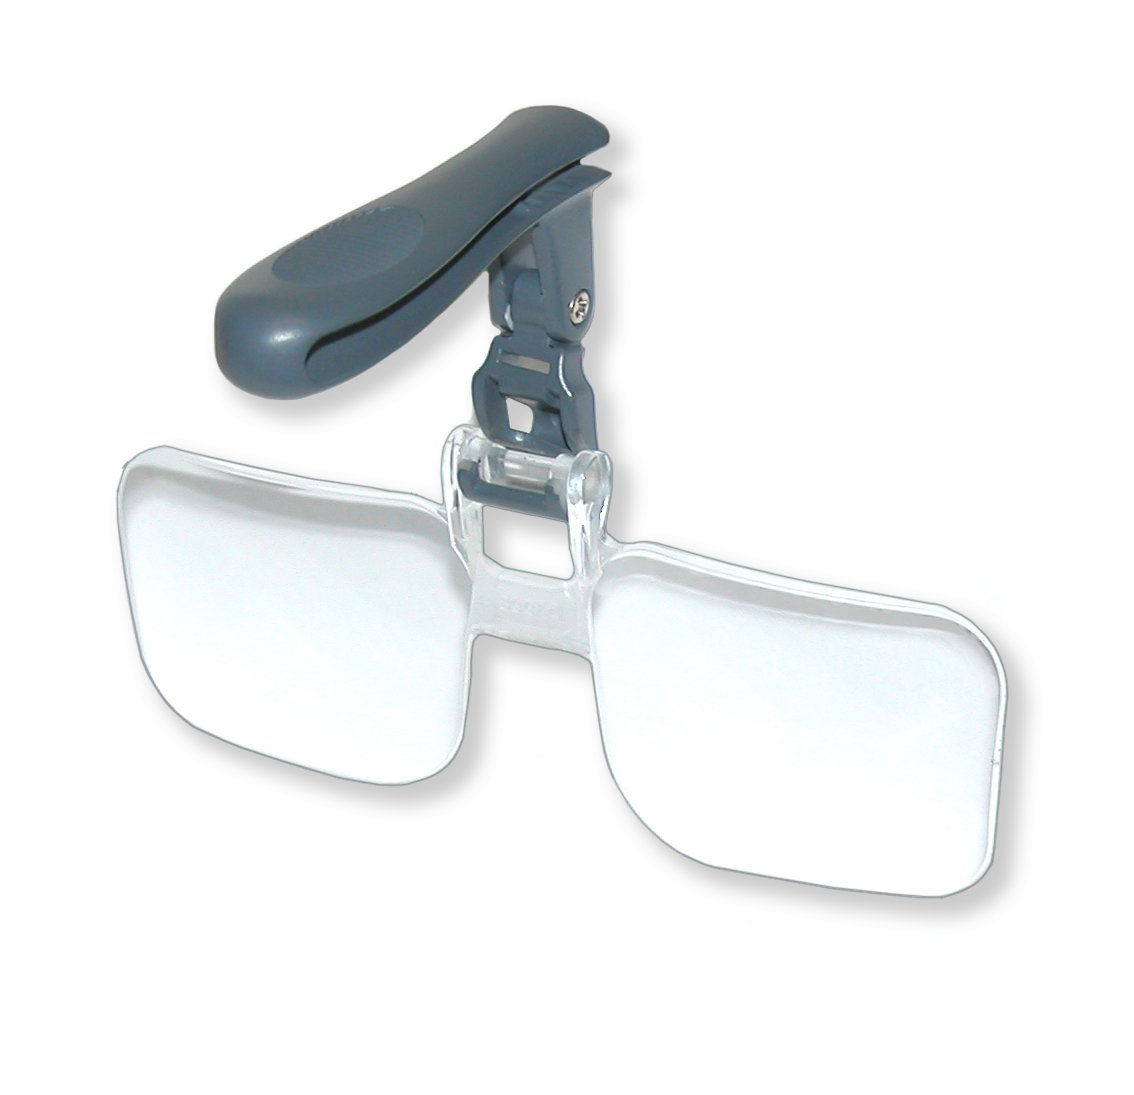 Carson Optical VisorMag 2.25x Power (+5.00 Diopters) Clip-On Magnifying Lens for Hats VM-14 by Carson